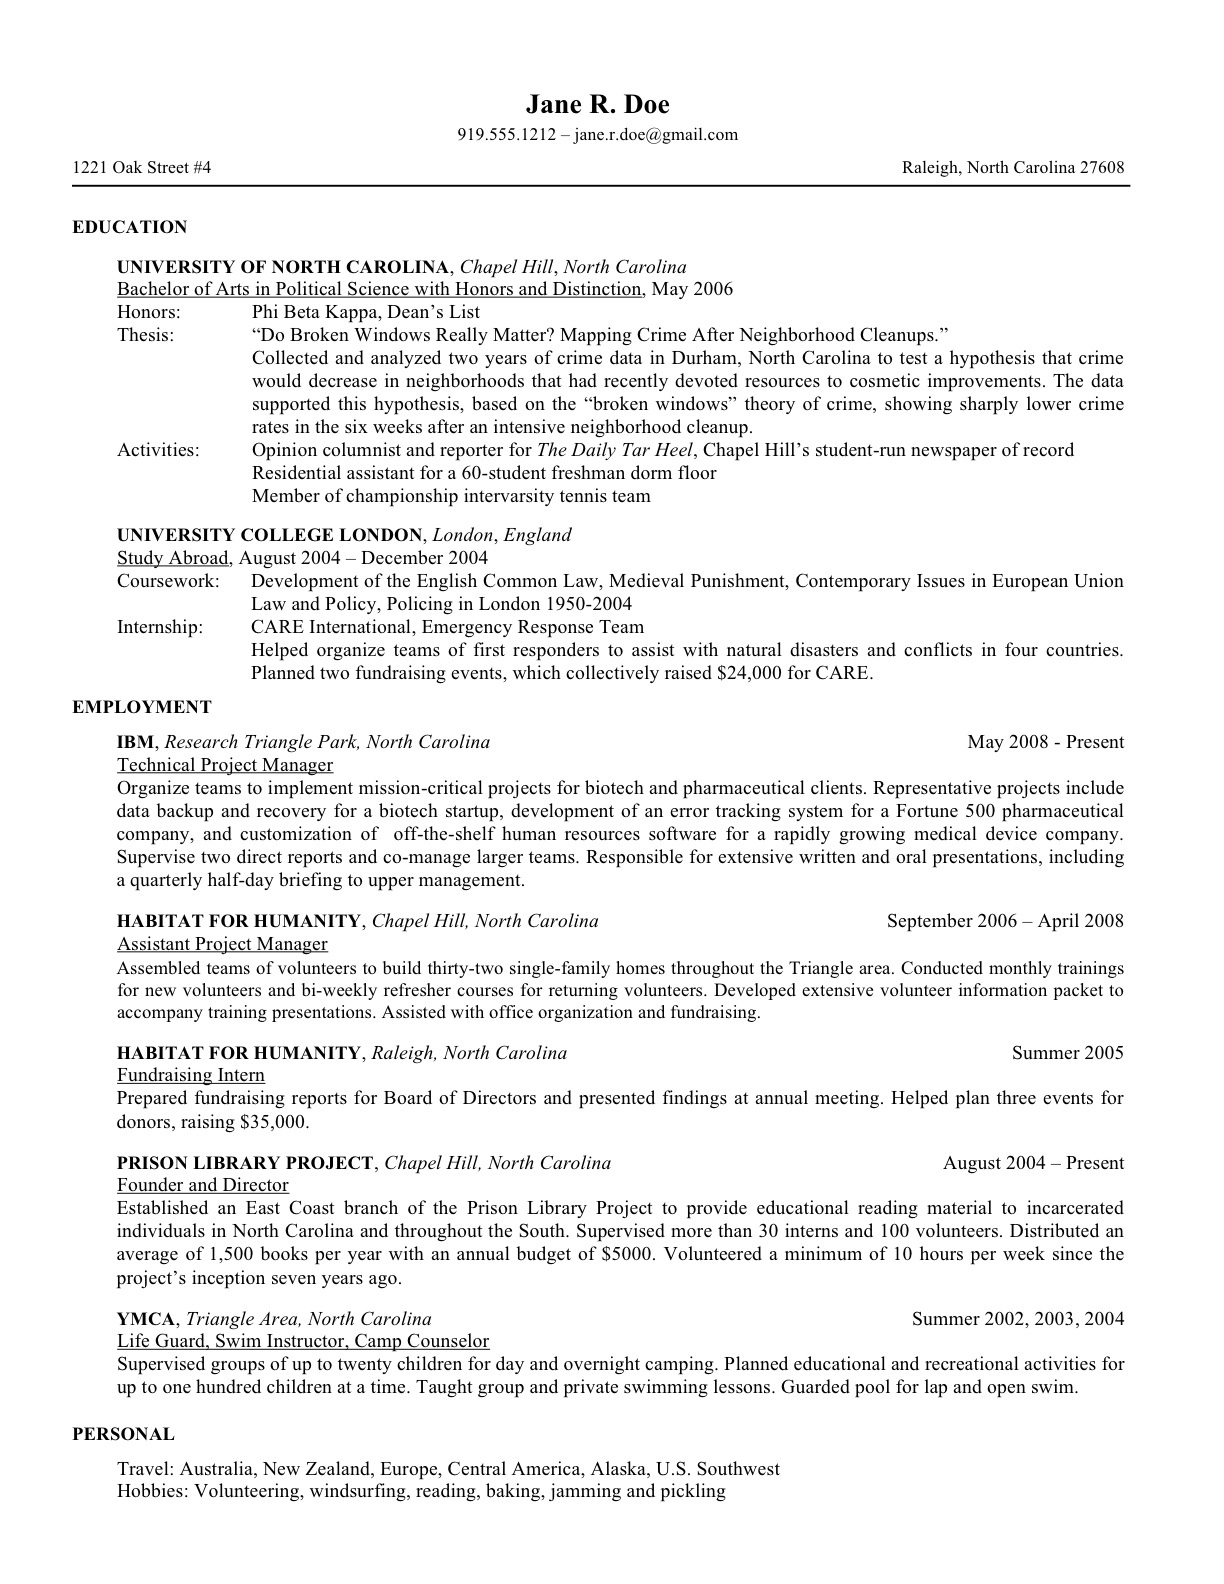 law school resume templates prepping your for of university at common mba interview self Resume Common Resume Templates